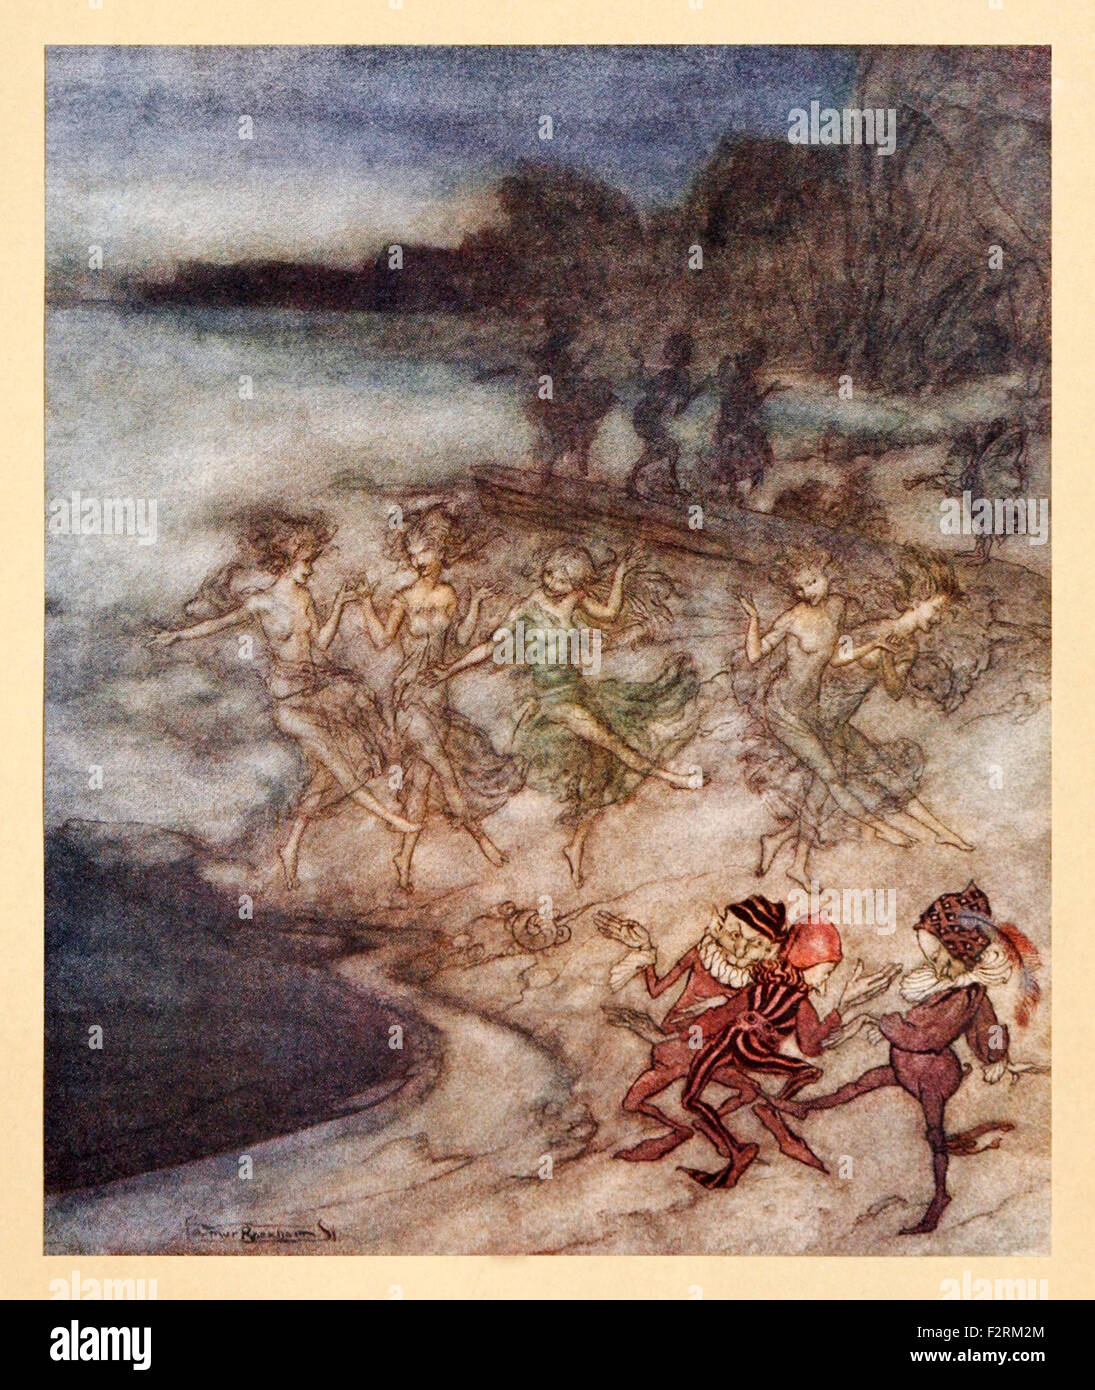 'And on the Tawny Sands and Shelves Trip the pert Fairies and the dapper Elves' from 'Comus' by - Stock Image